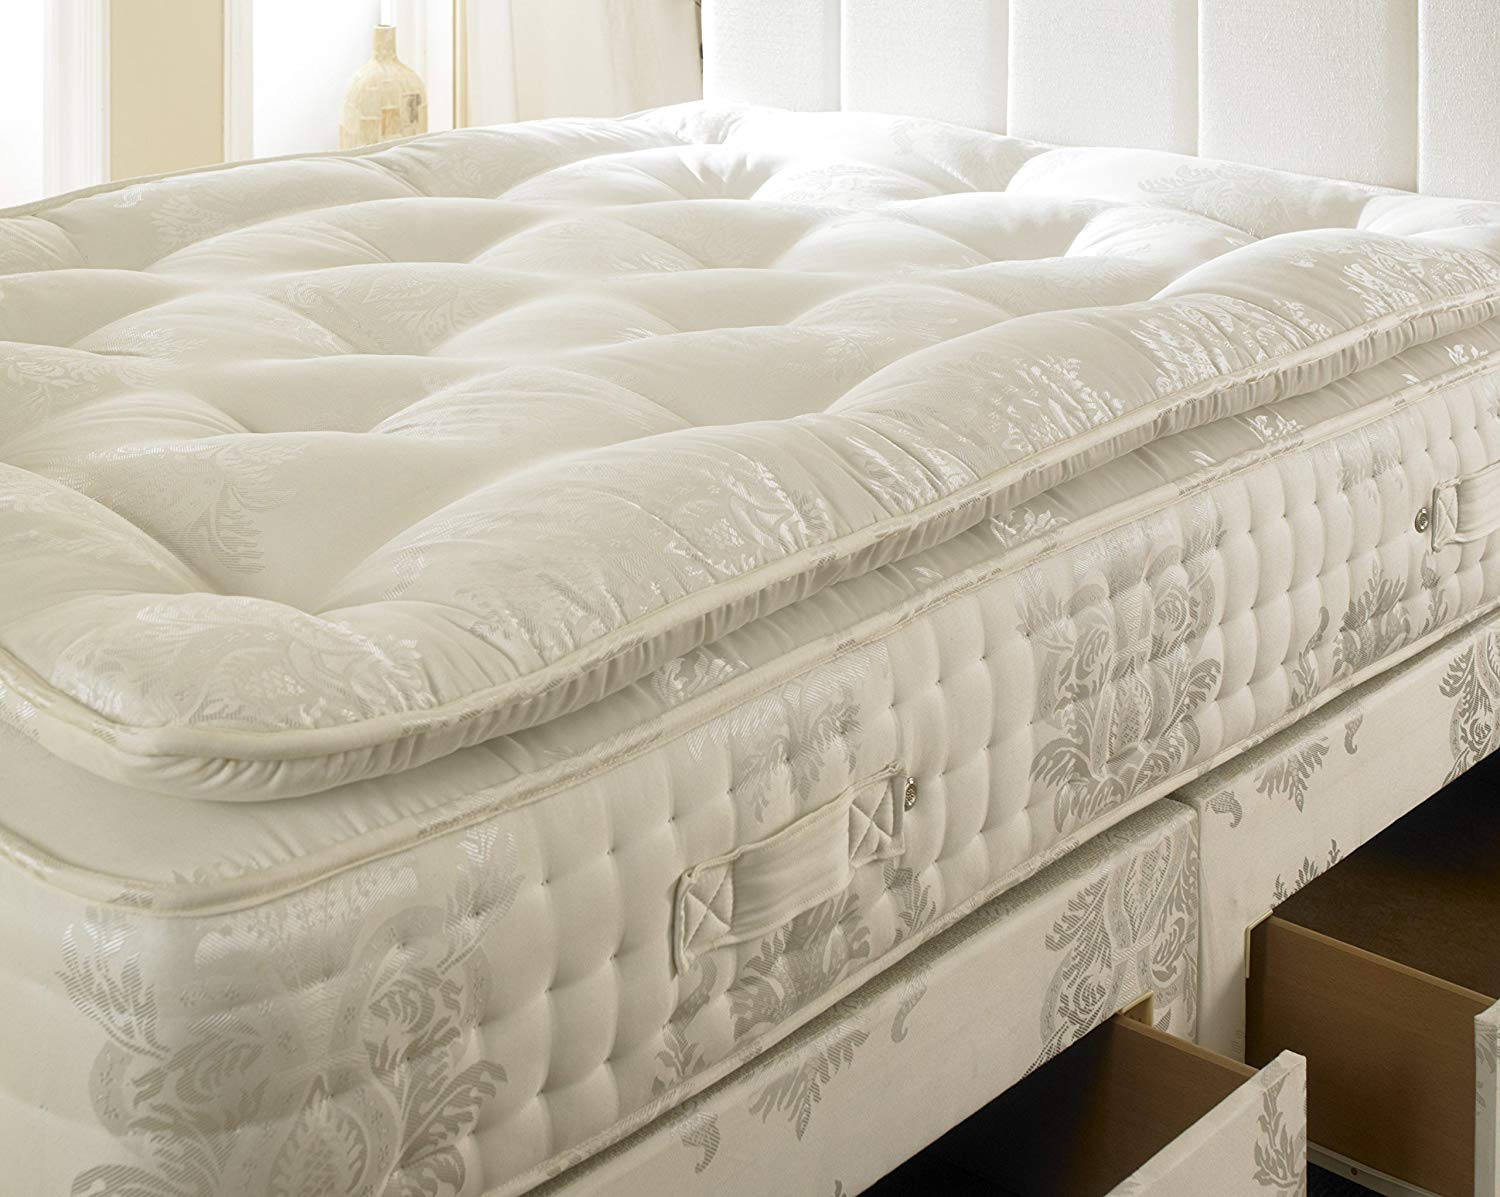 Visco Therapy Deluxe Reflex Coil Spring Rolled Mattress – Double